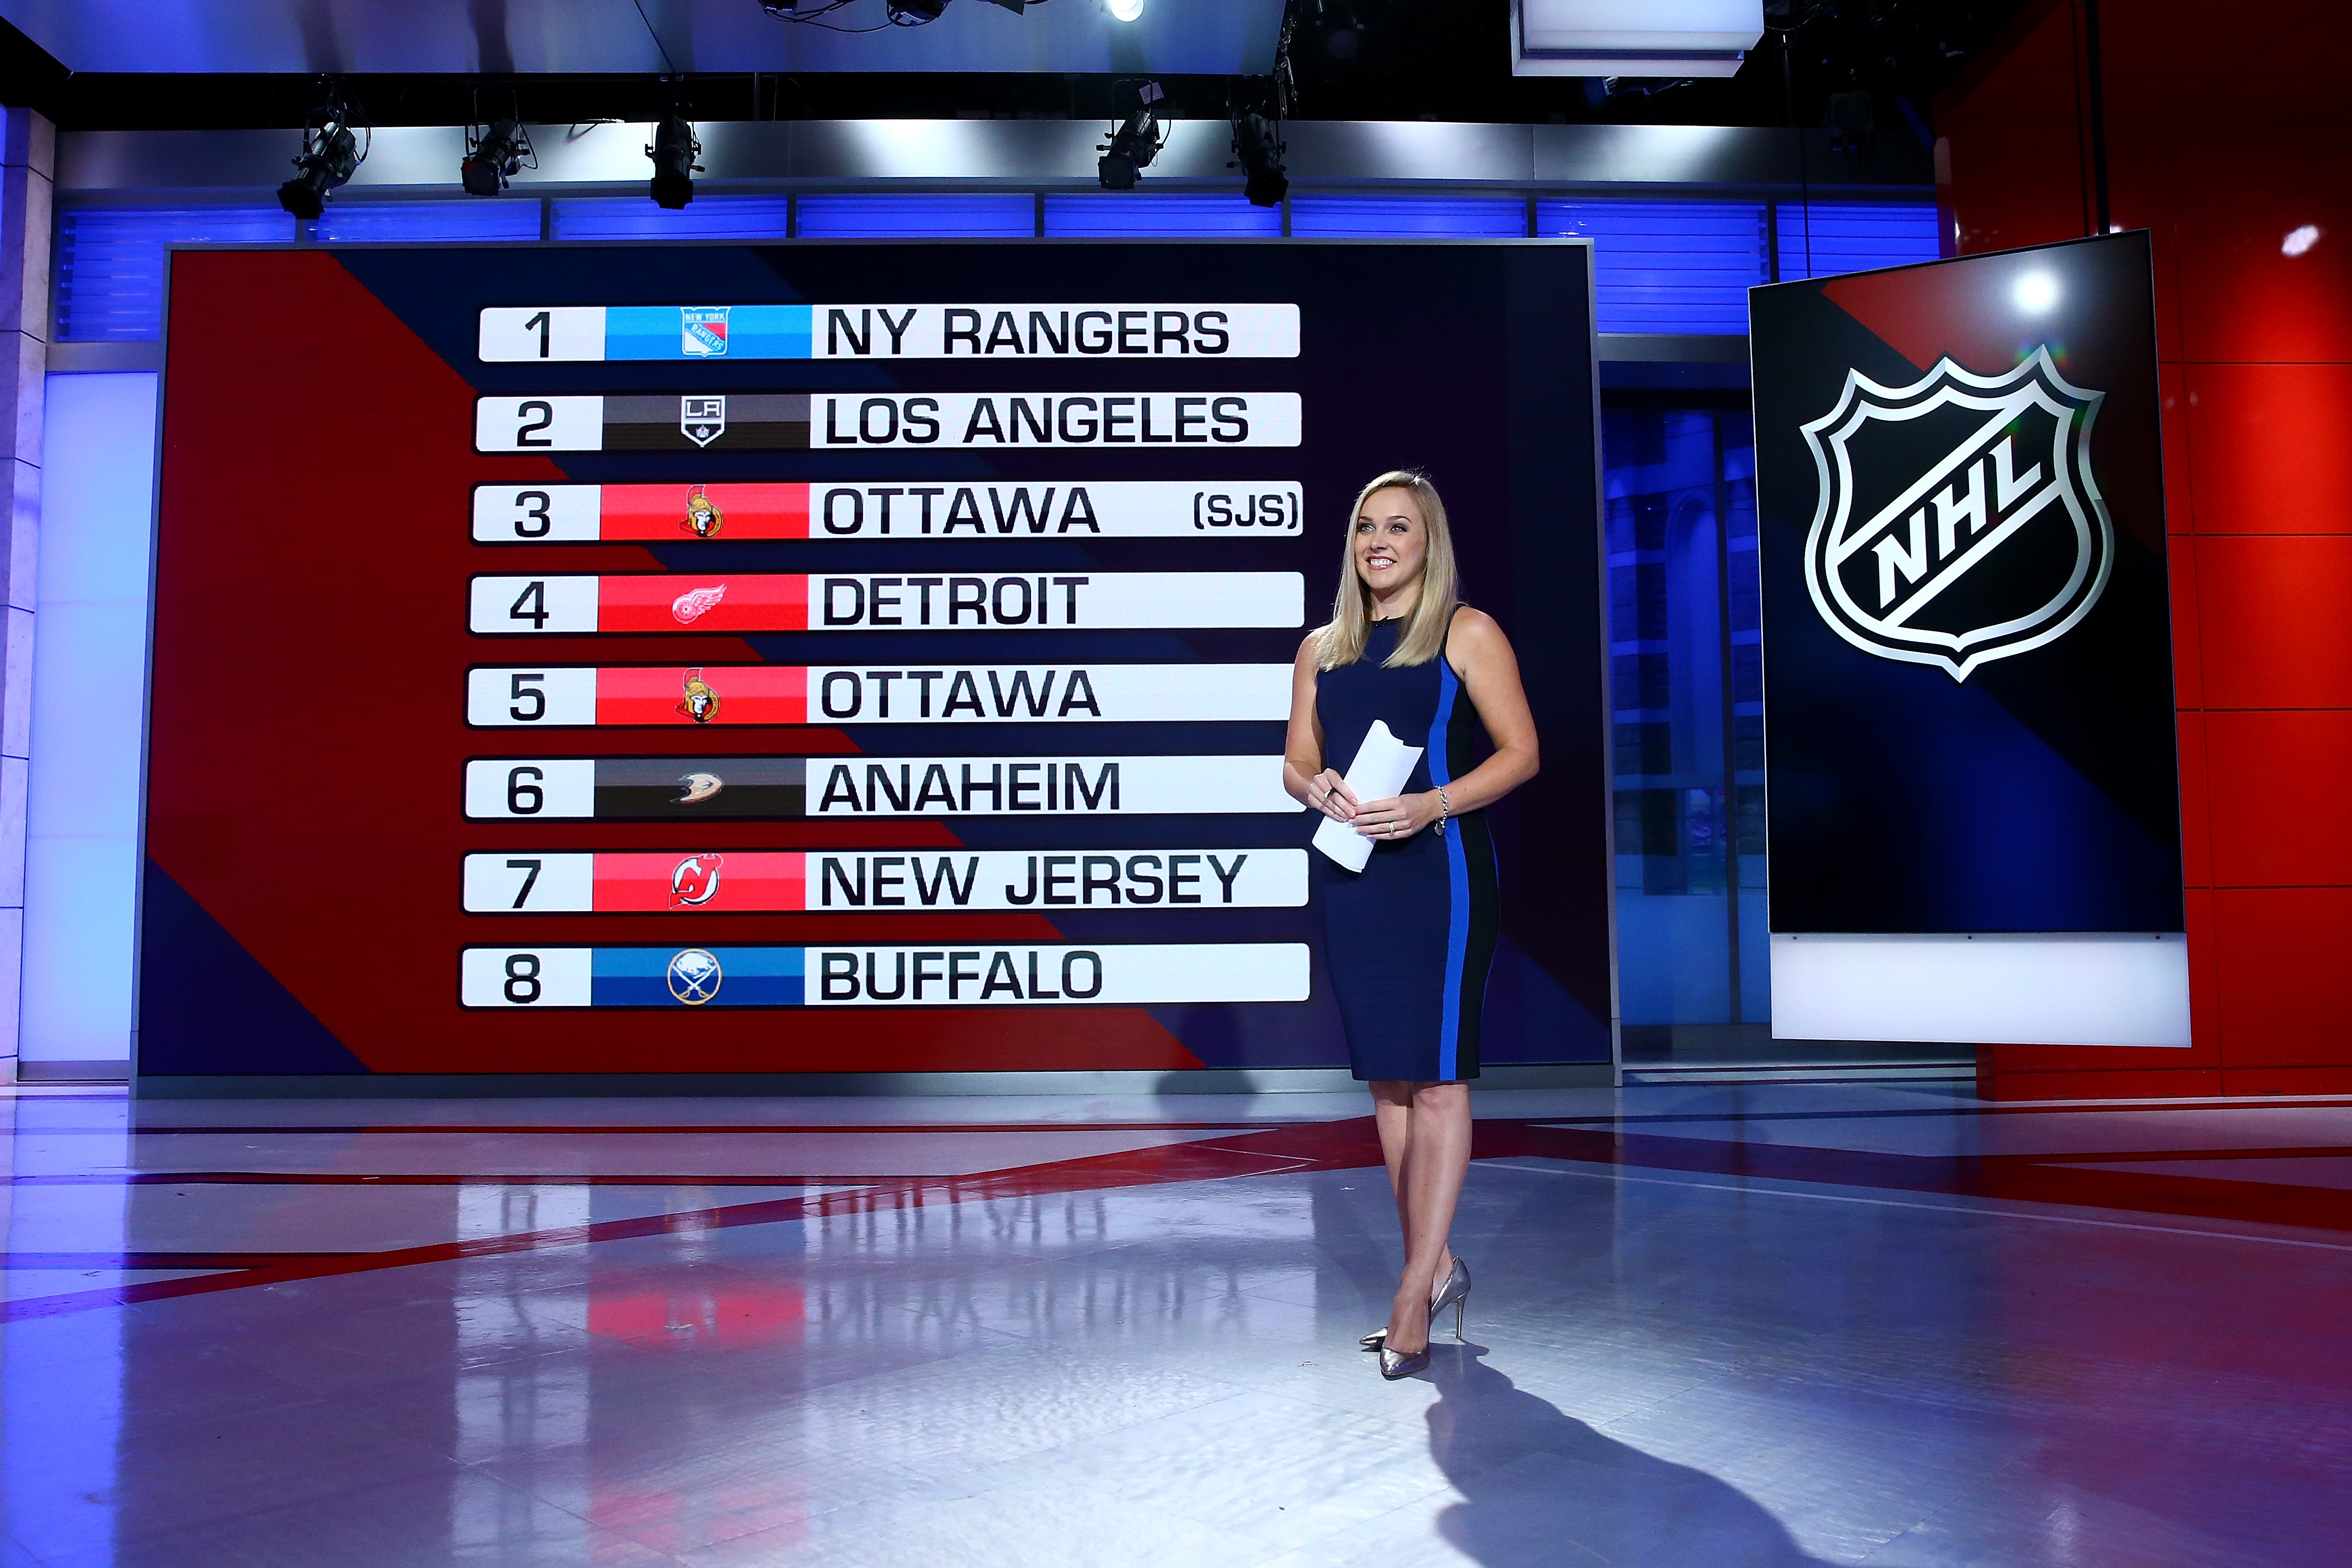 SECAUCUS, NEW JERSEY - AUGUST 10: 2020 NHL Network studio host Jamie Hersch is seen with the NHL draft positions board during Phase 2 of the 2020 NHL Draft Lottery on August 10, 2020 at the NHL Network's studio in Secaucus, New Jersey.